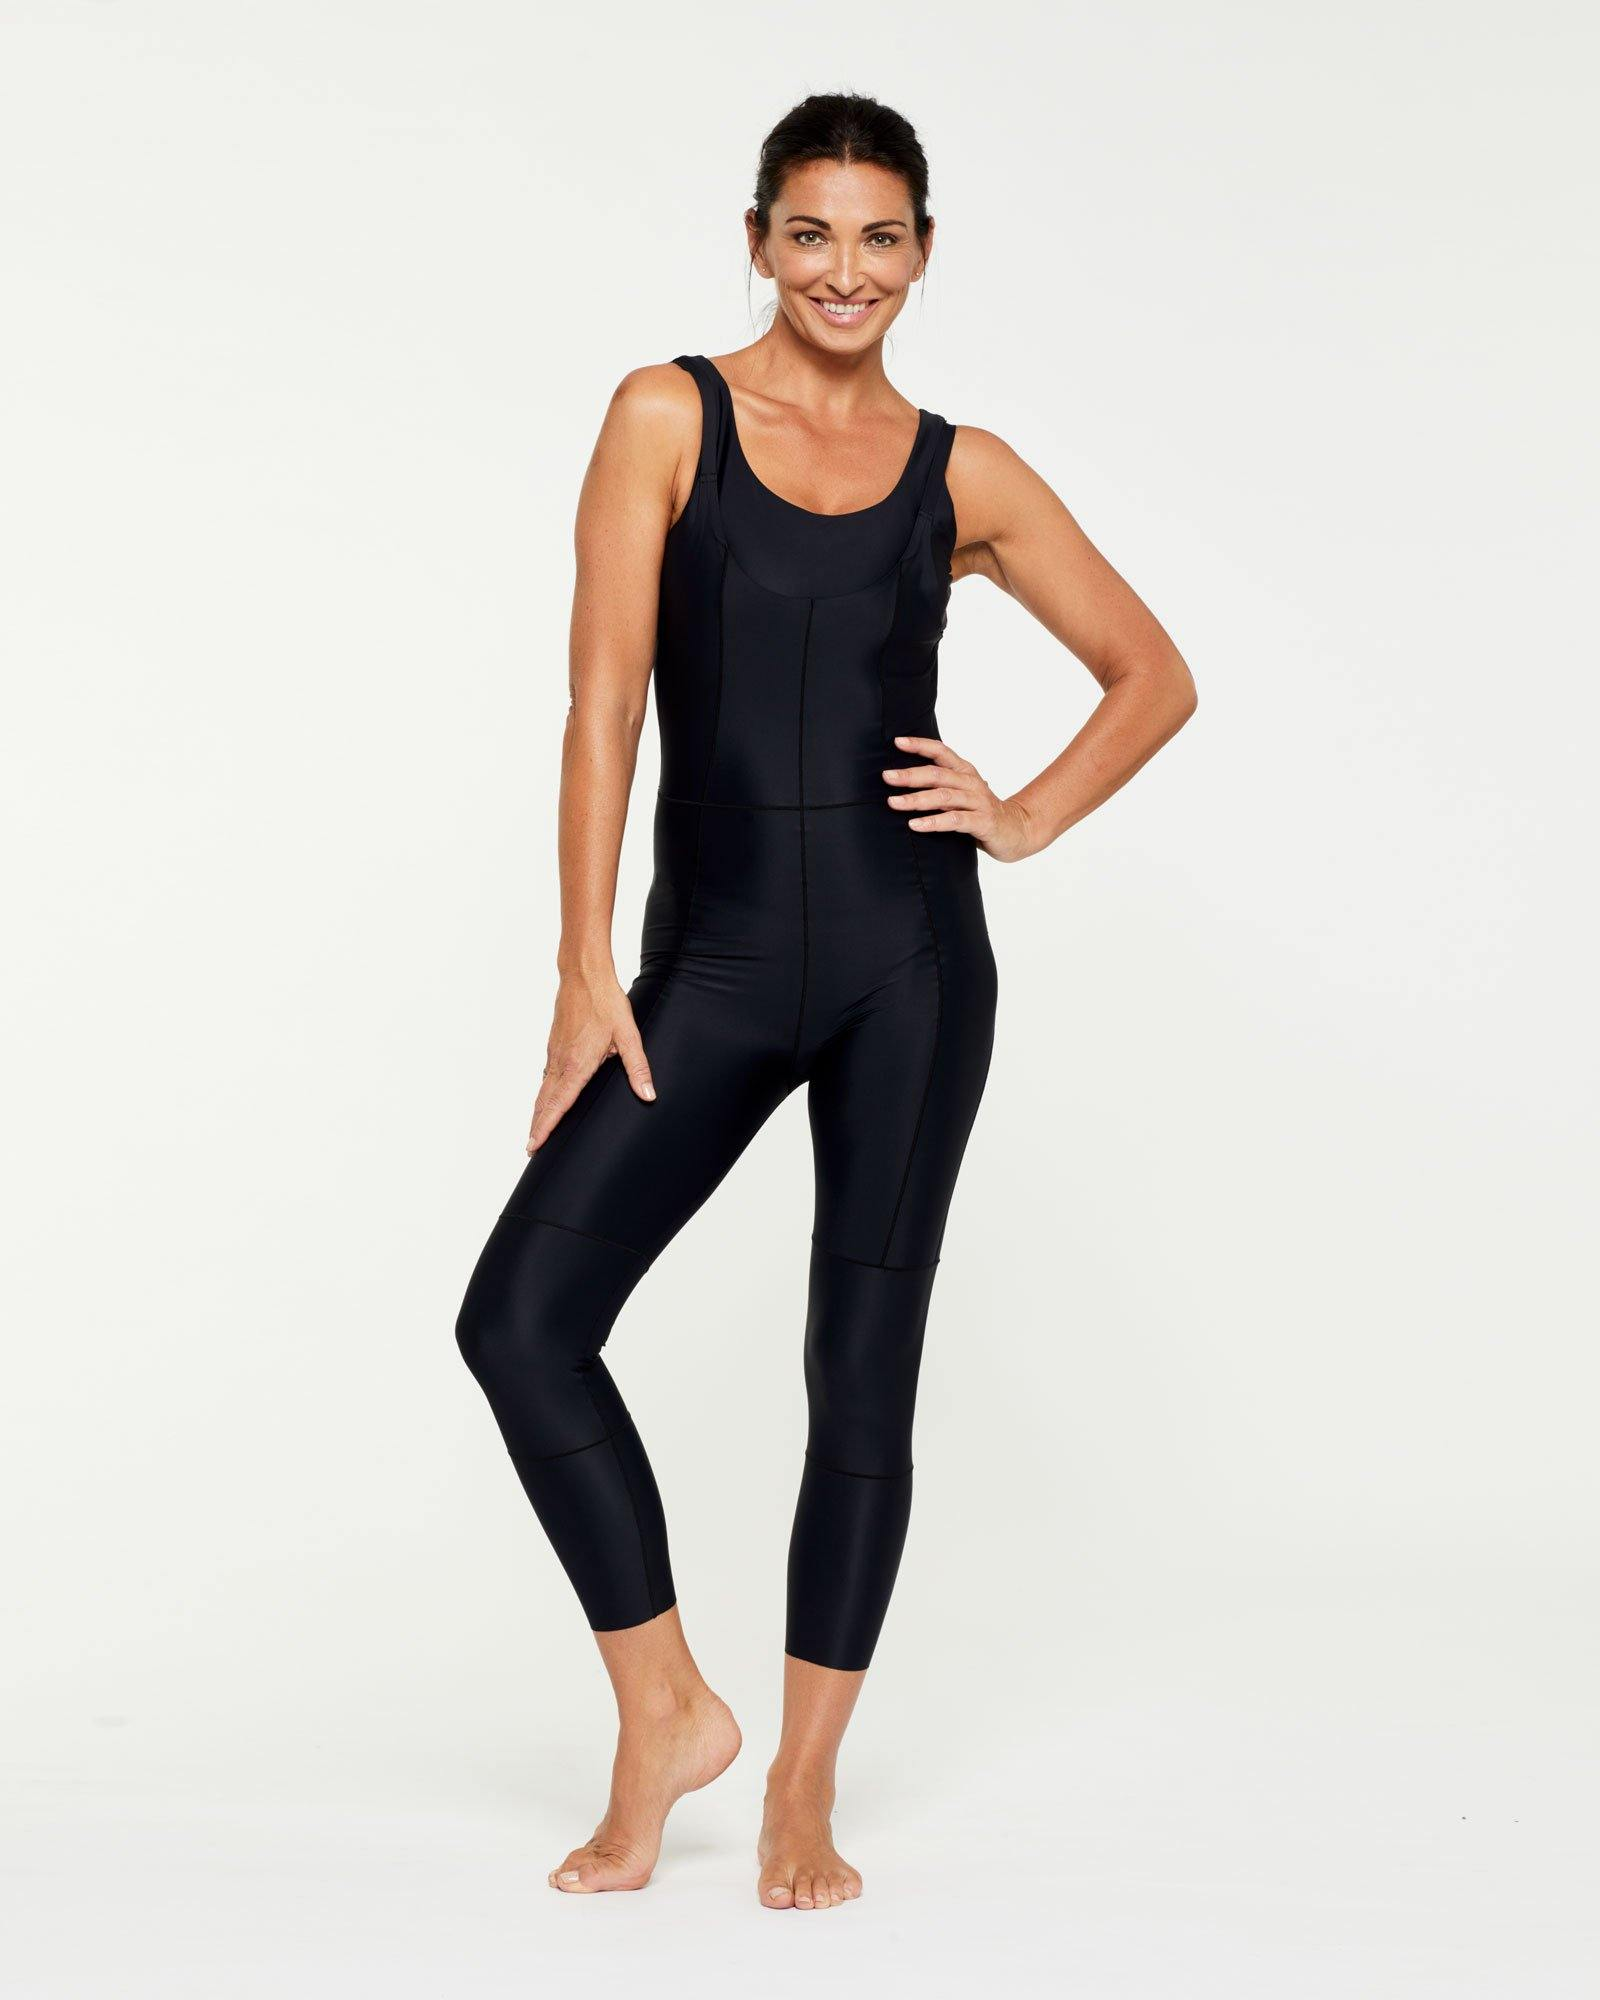 Companion long 7/8 BODYSUIT, Bonded worn high front low back, front view